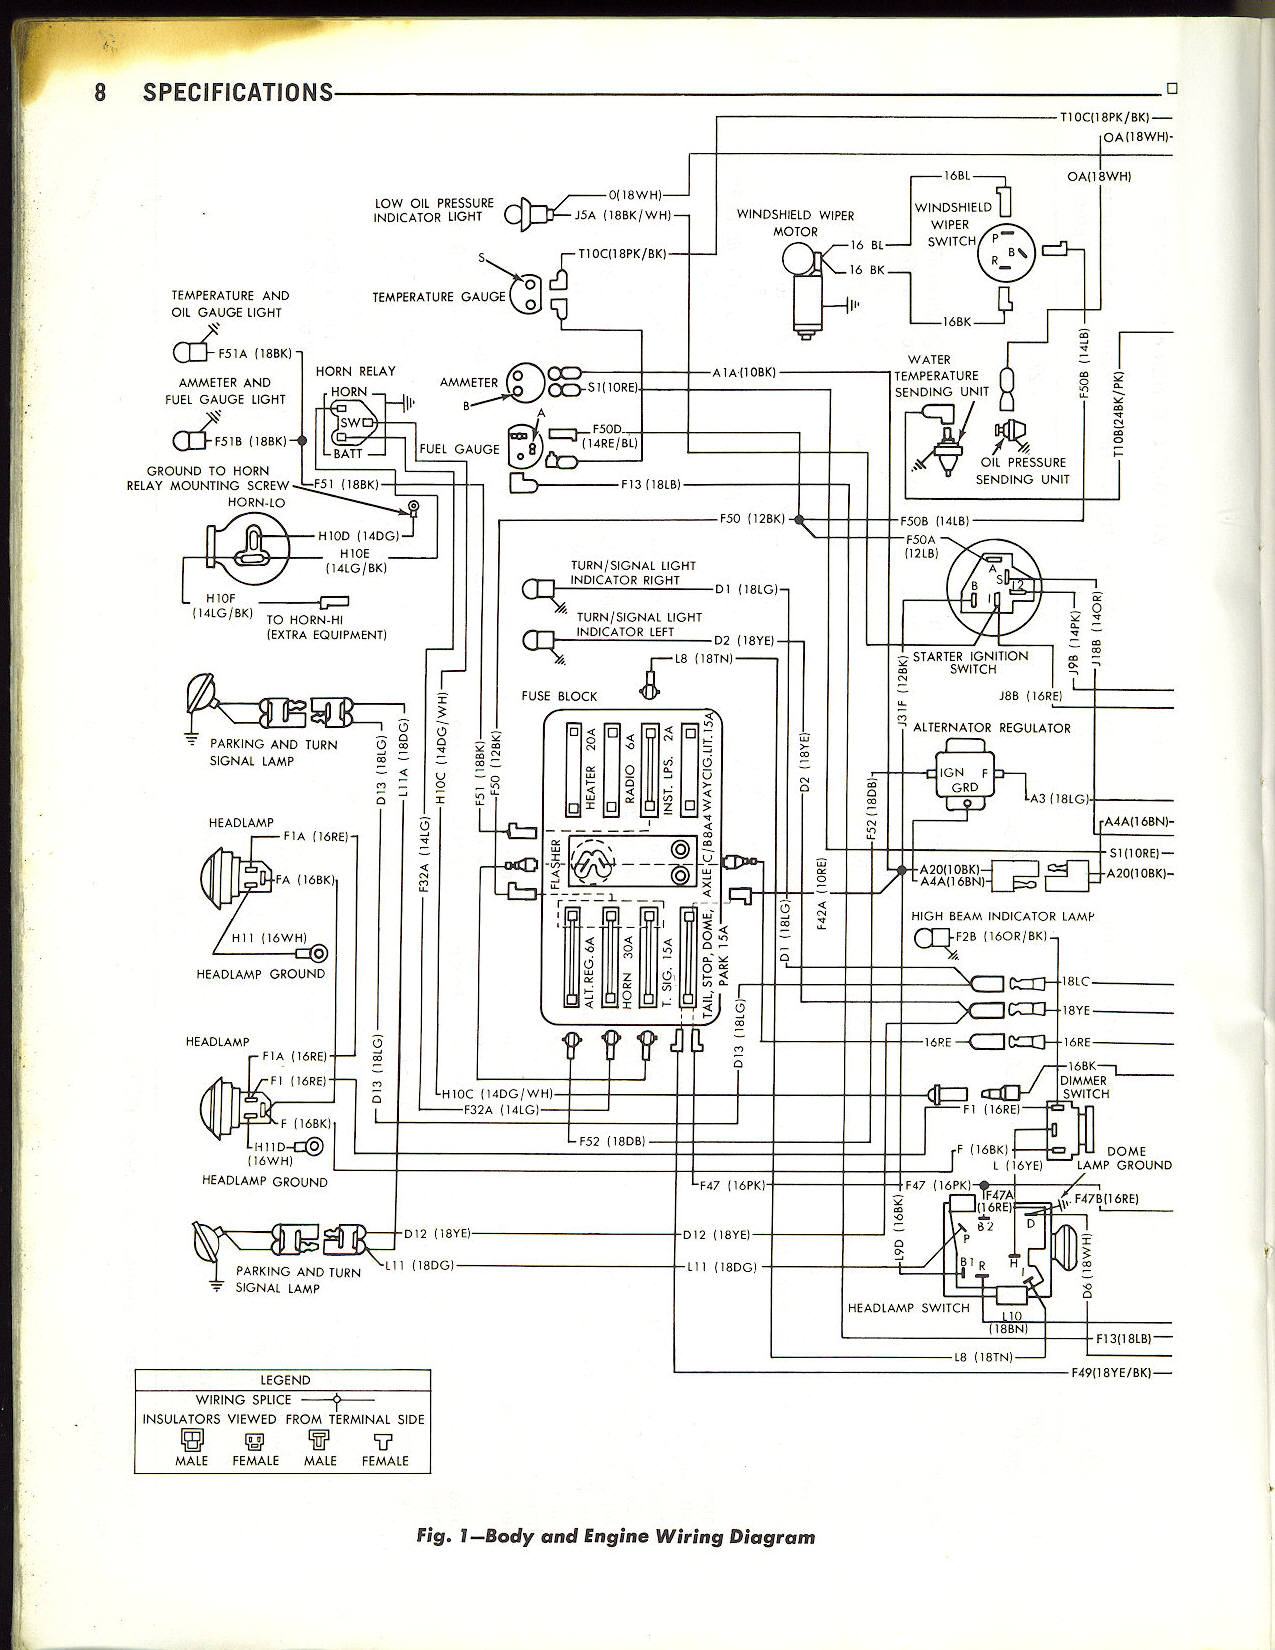 1967 Dodge Wiring Diagram Wiring Diagram Complete Complete Lionsclubviterbo It